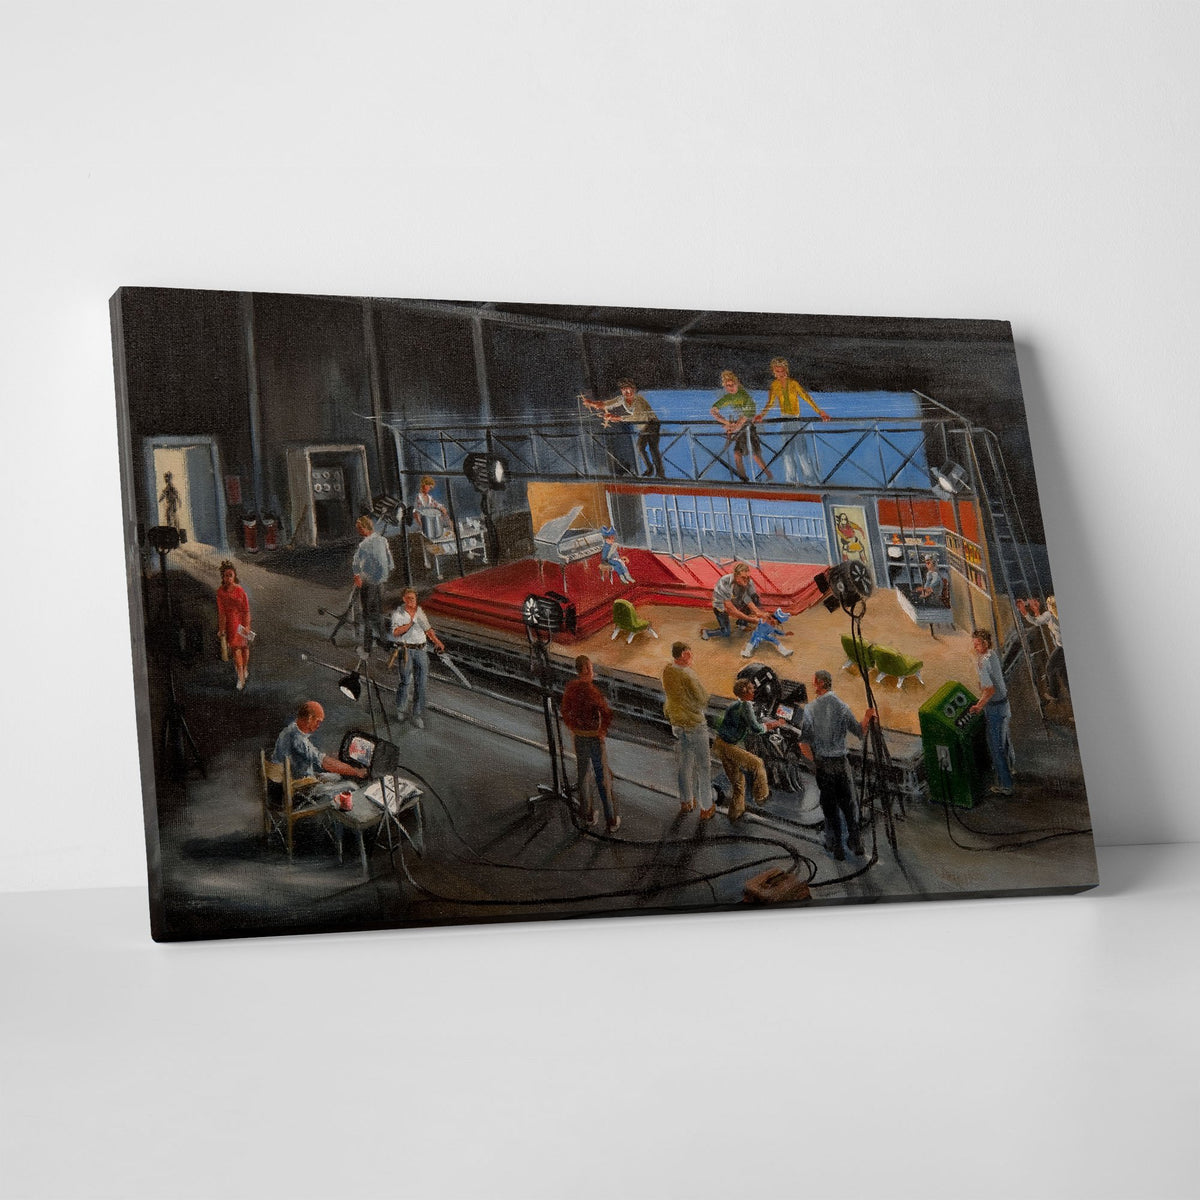 Century 21 Bob Bell Painting Printed on Canvas [Exclusive] - The Gerry Anderson Store